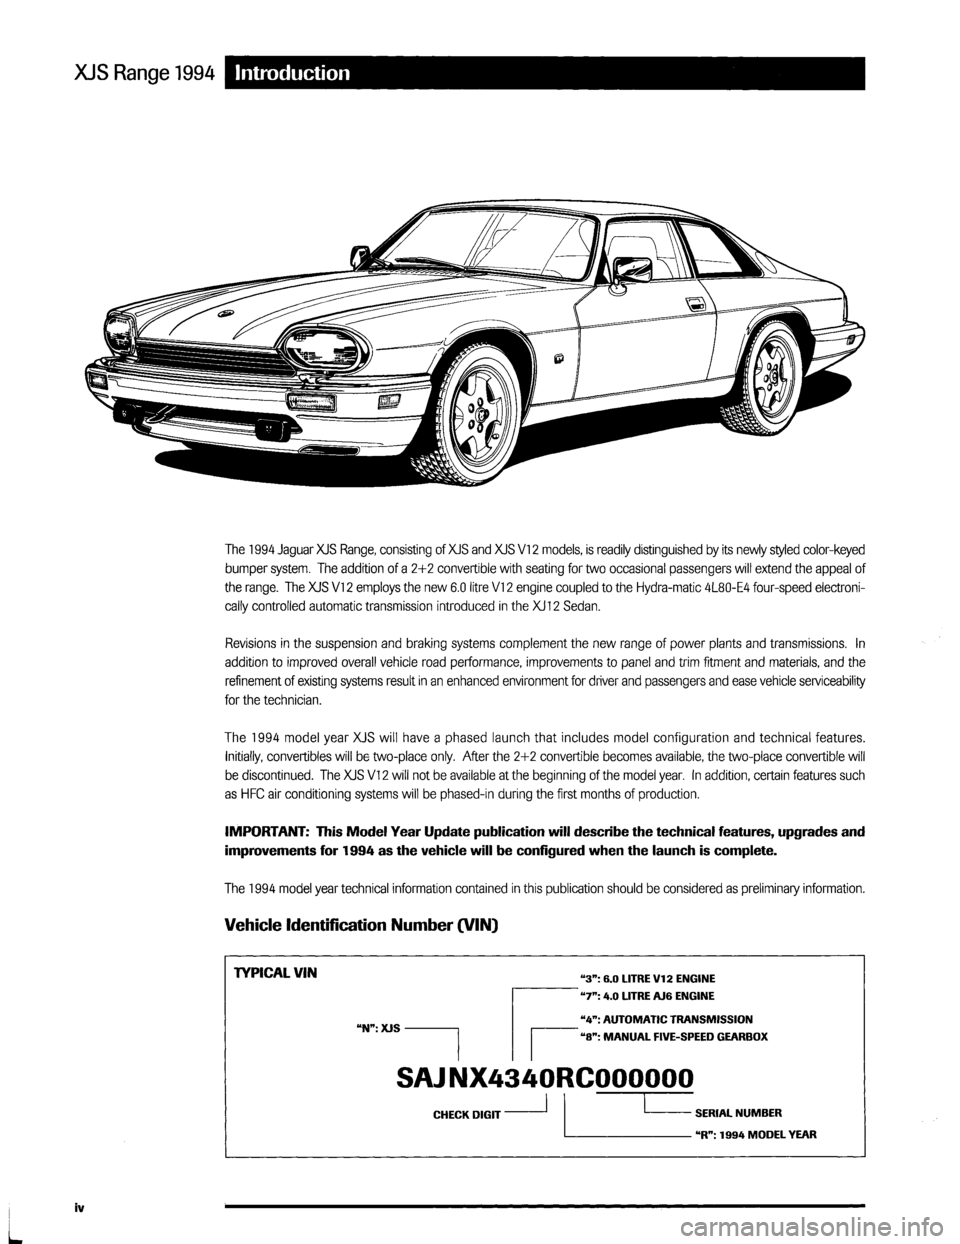 jaguar xjs 1994 2 g update manual. Black Bedroom Furniture Sets. Home Design Ideas